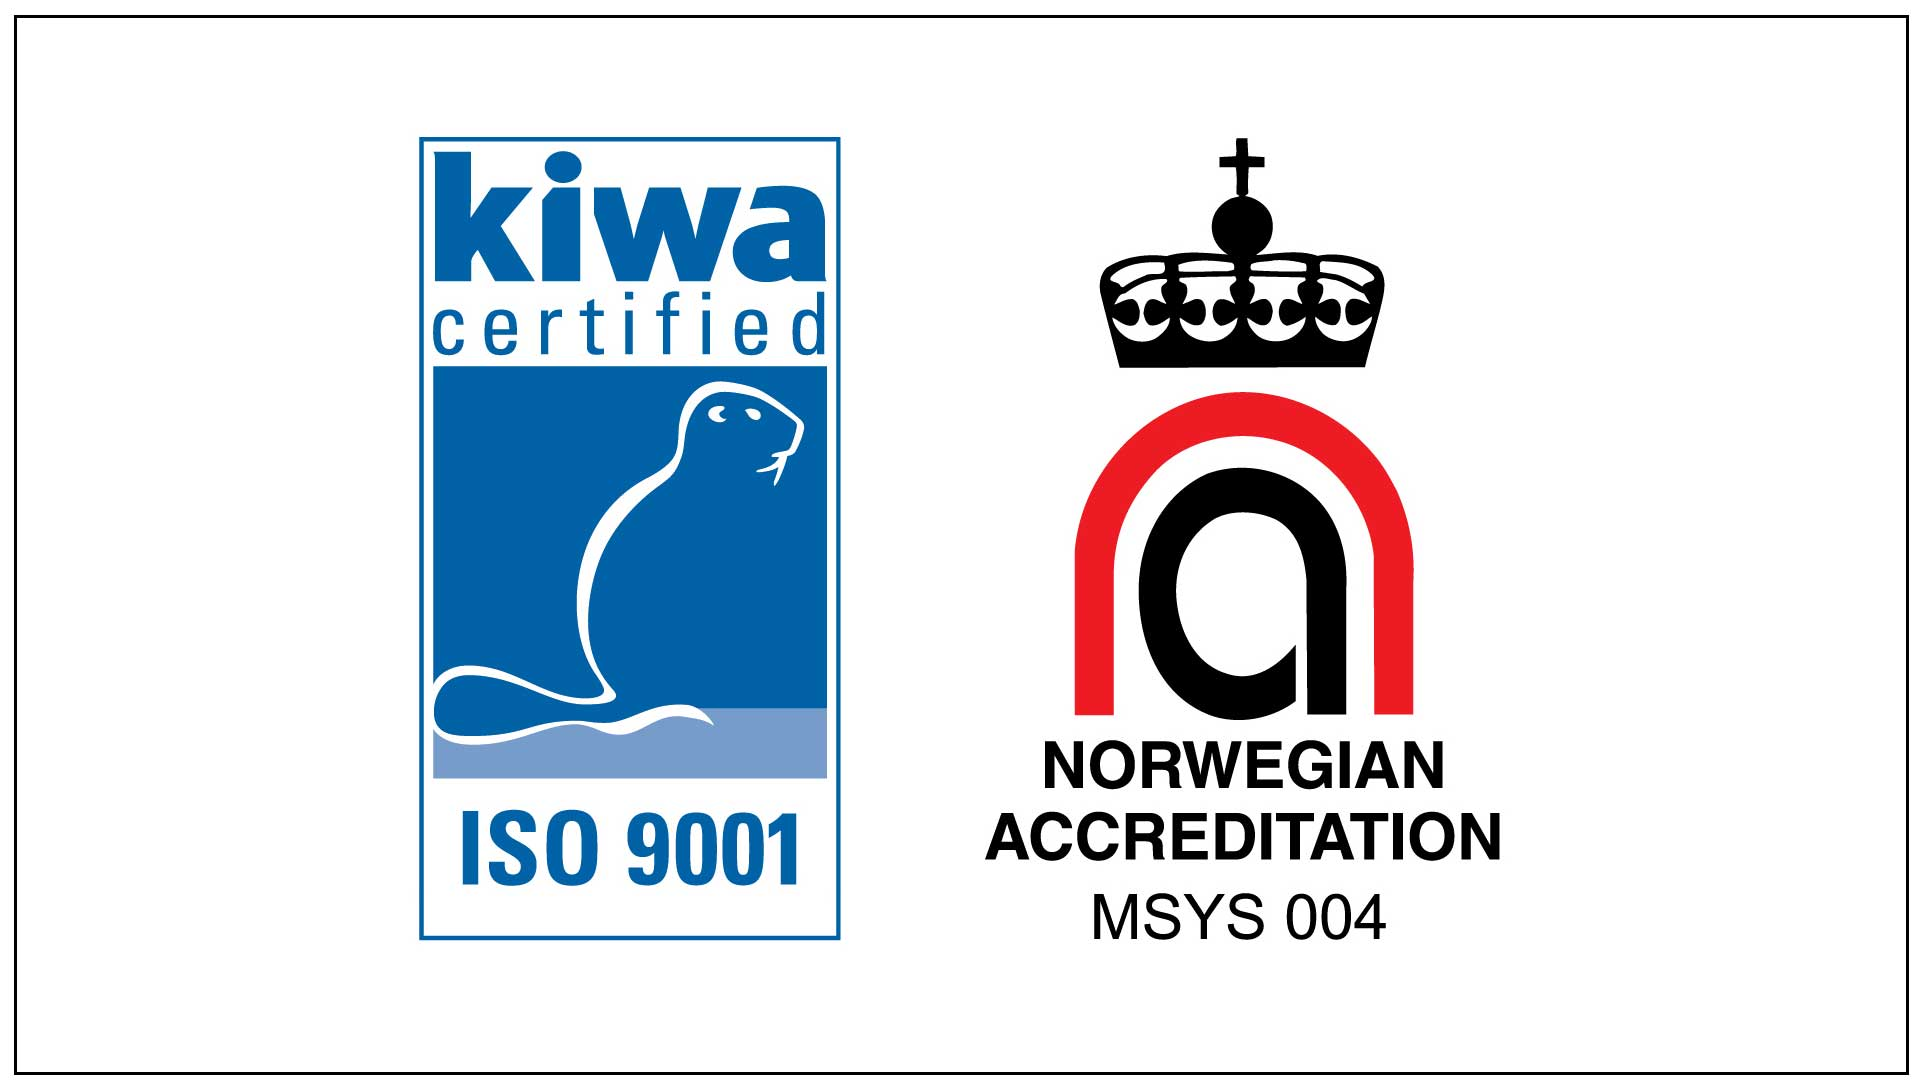 iso 9001_2015 Lindberg & Lund AS